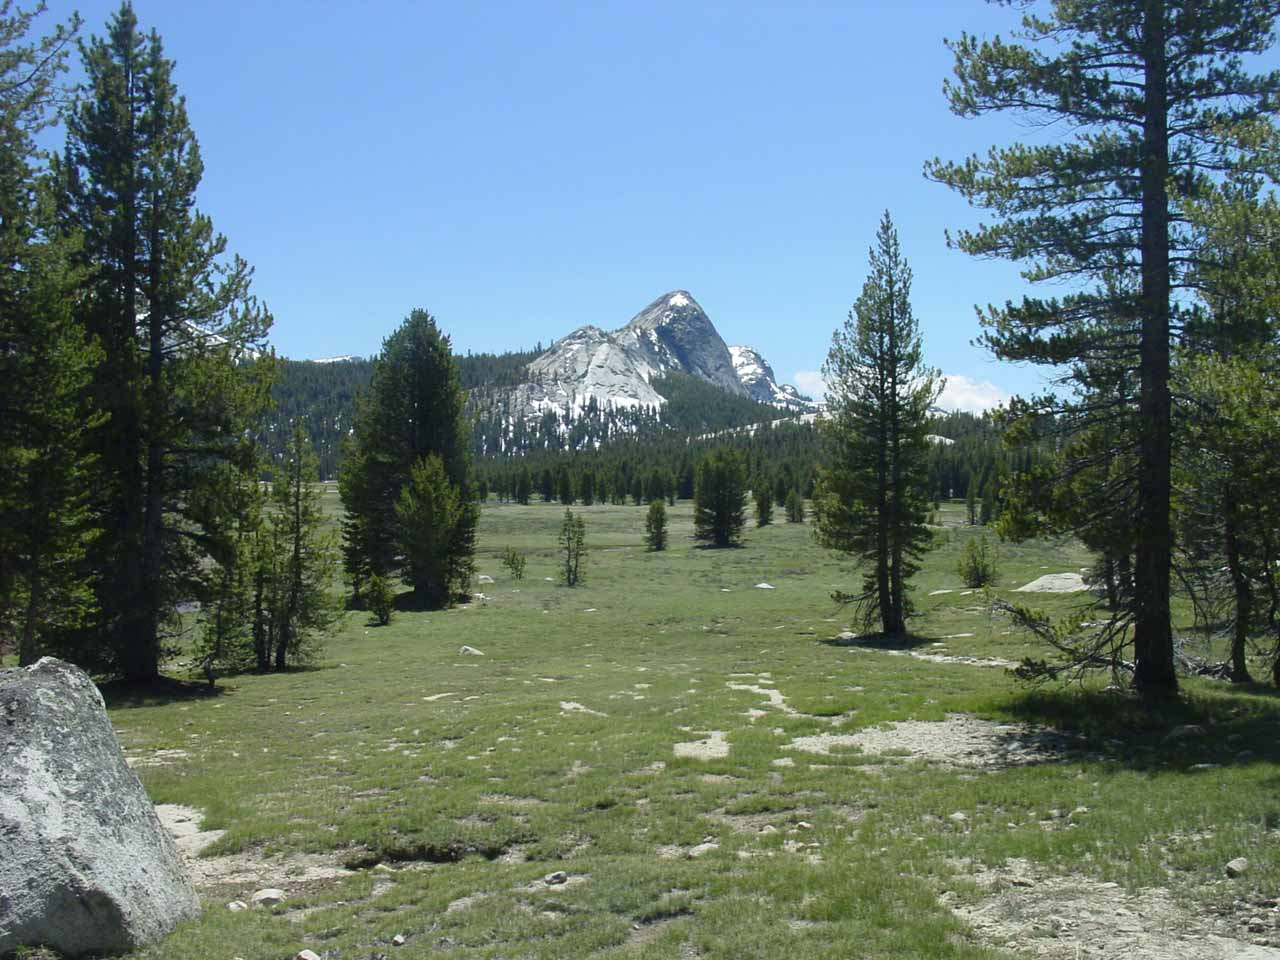 When starting out on the hike towards Tuolumne Falls, we had to pass through the vast Tuolumne Meadows, which featured a large meadow backed by attractive granite peaks like Fairview Dome shown in this photo